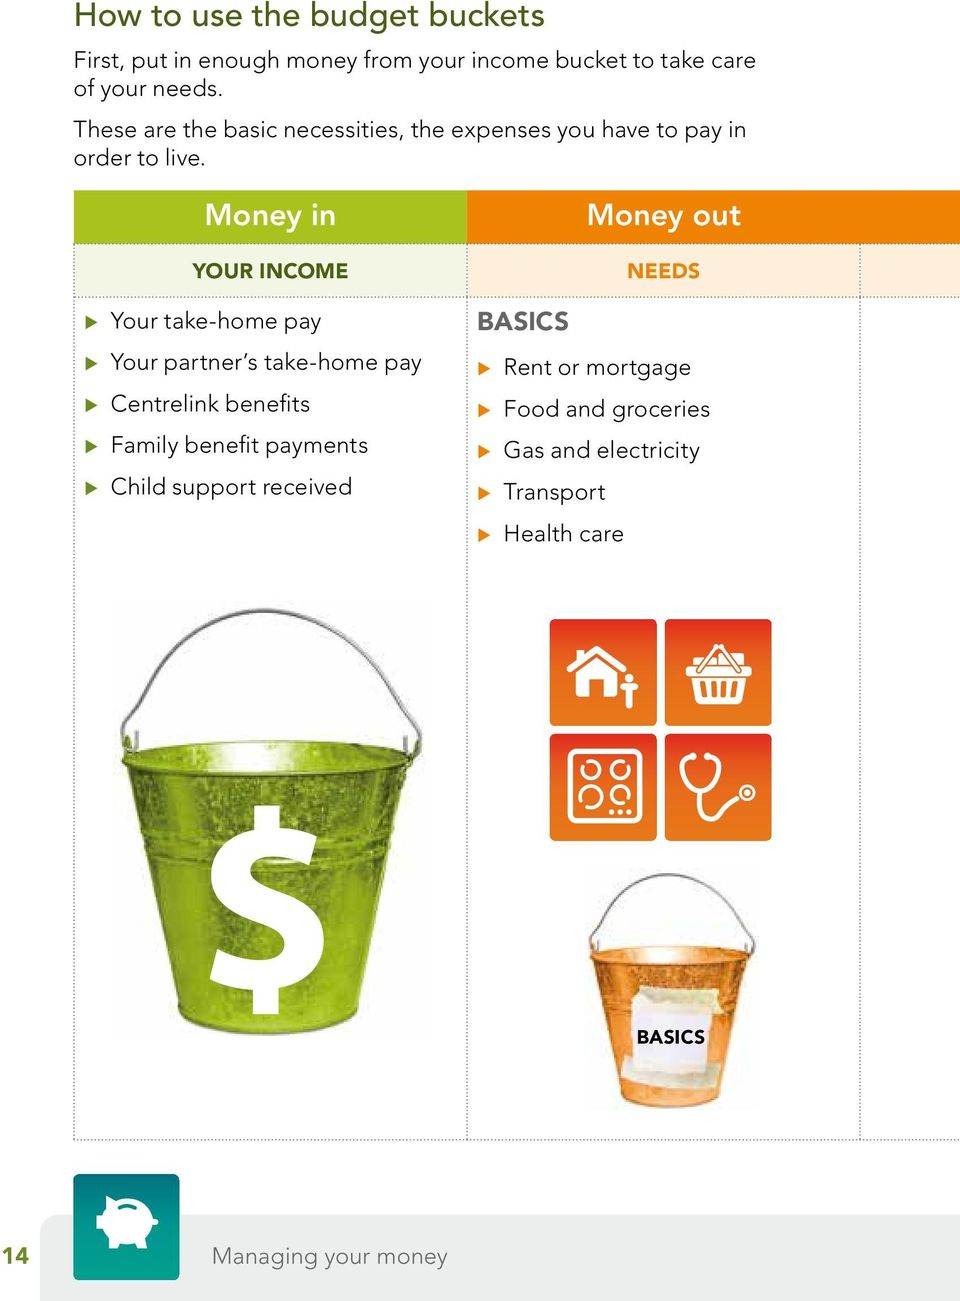 Money in YOUR INCOME Your take-home pay Your partner s take-home pay Centrelink benefits Family benefit payments